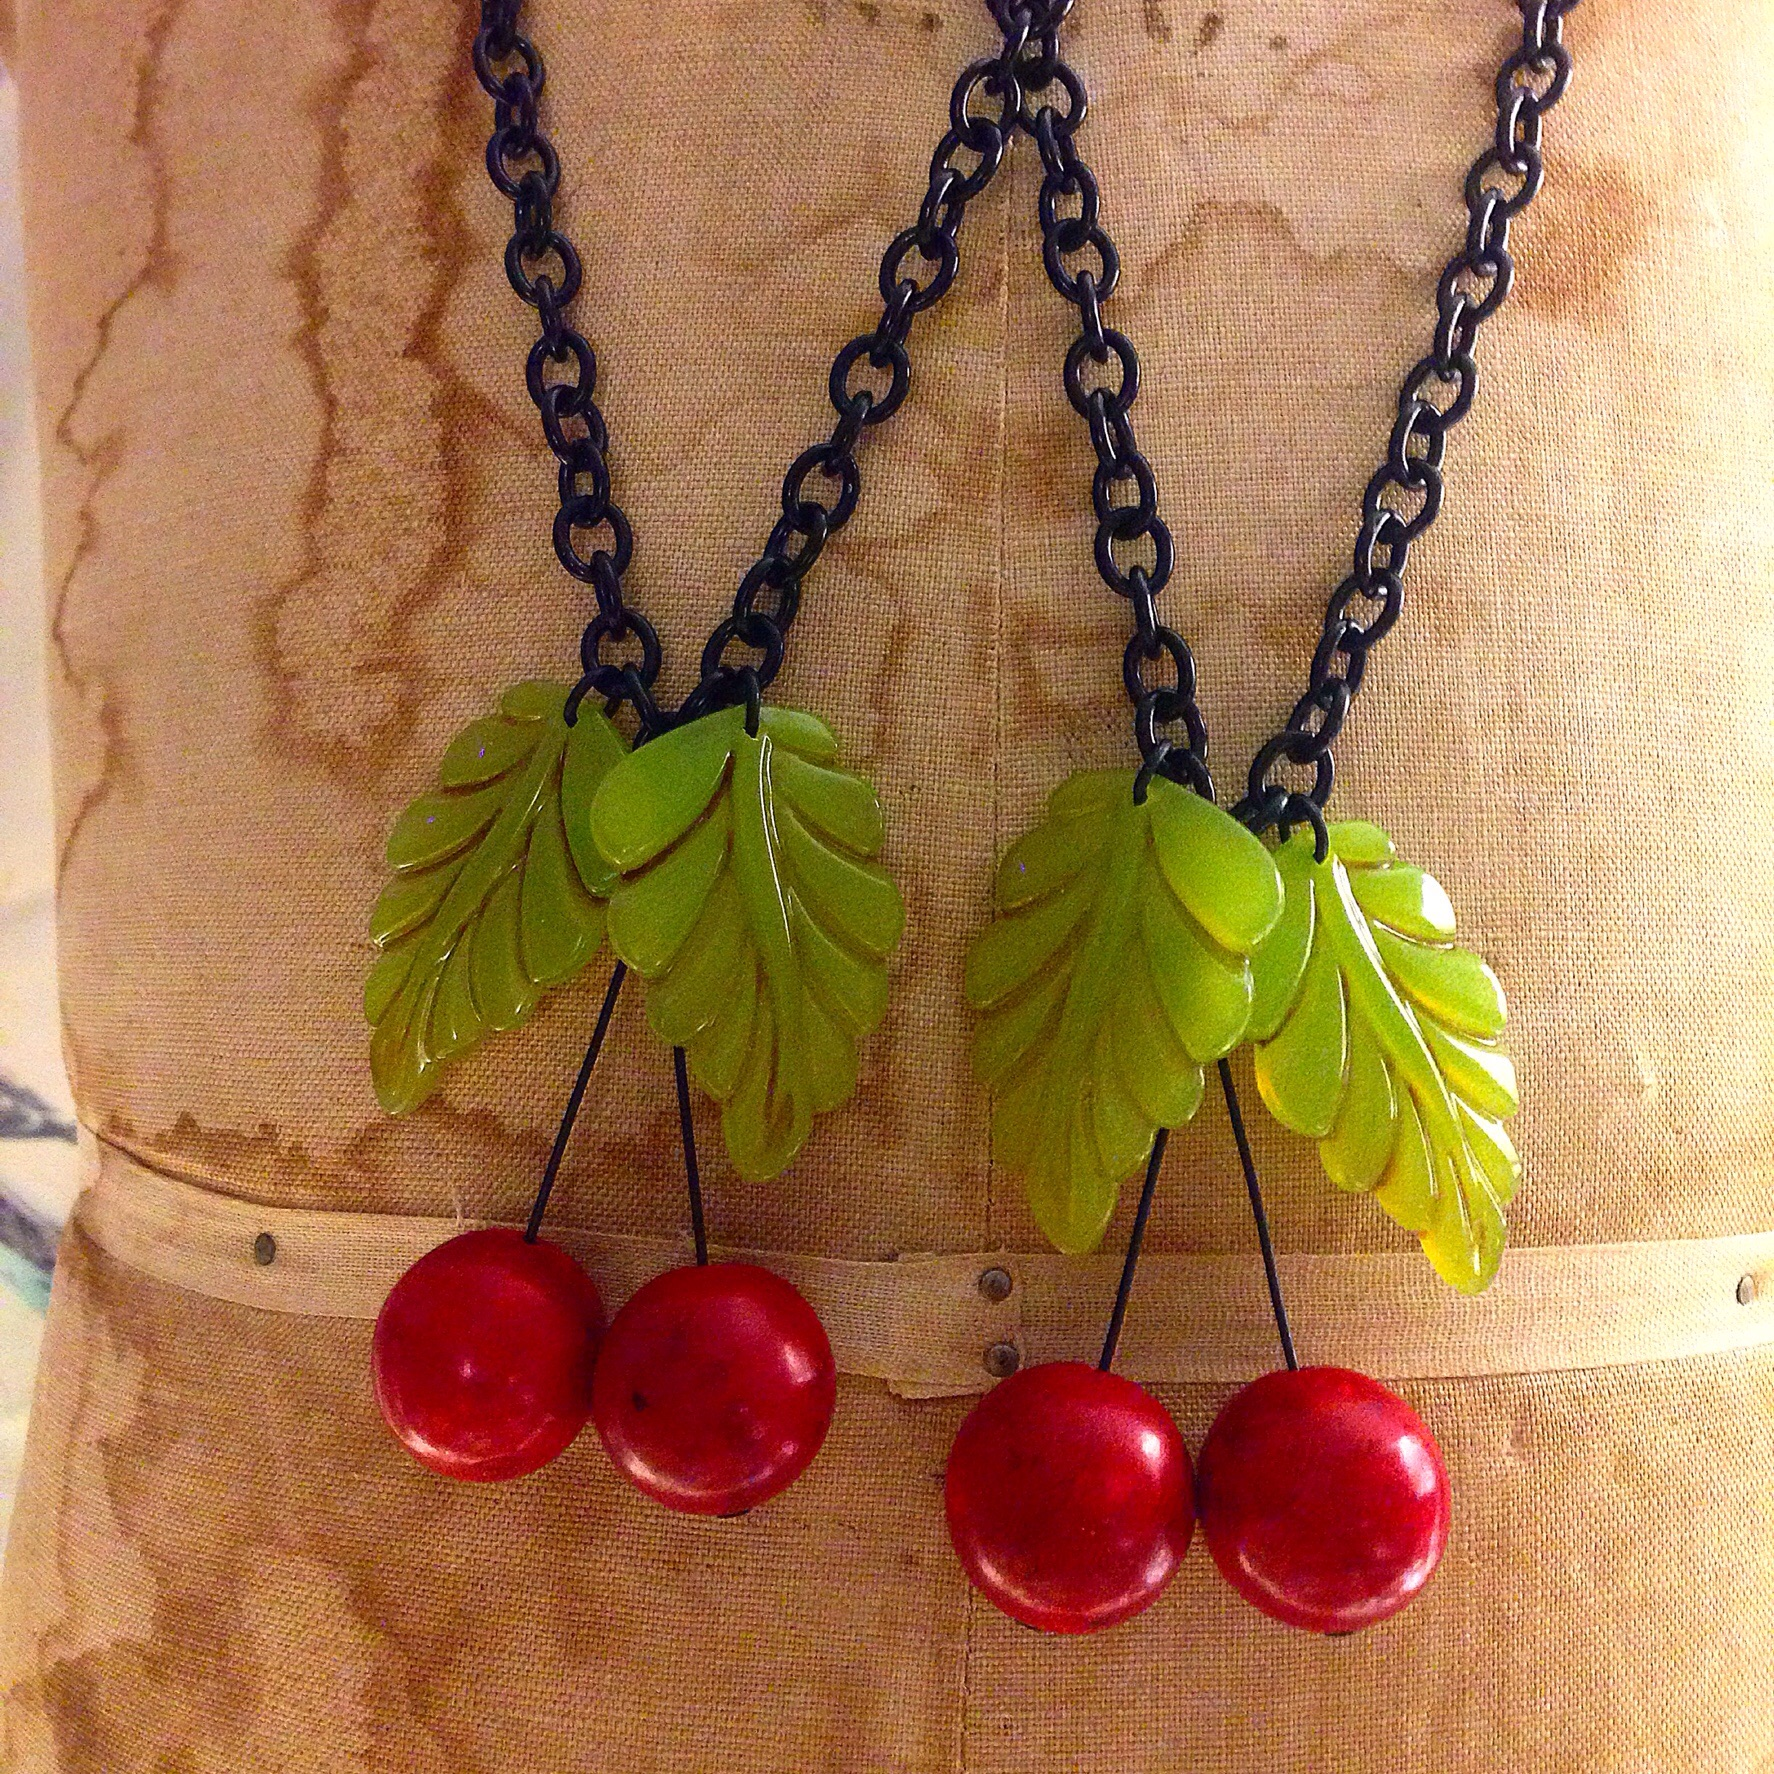 These just turned out great! Problem is sourcing more large red beads for cherries! I make the leaves.  So far I was able to make 8!